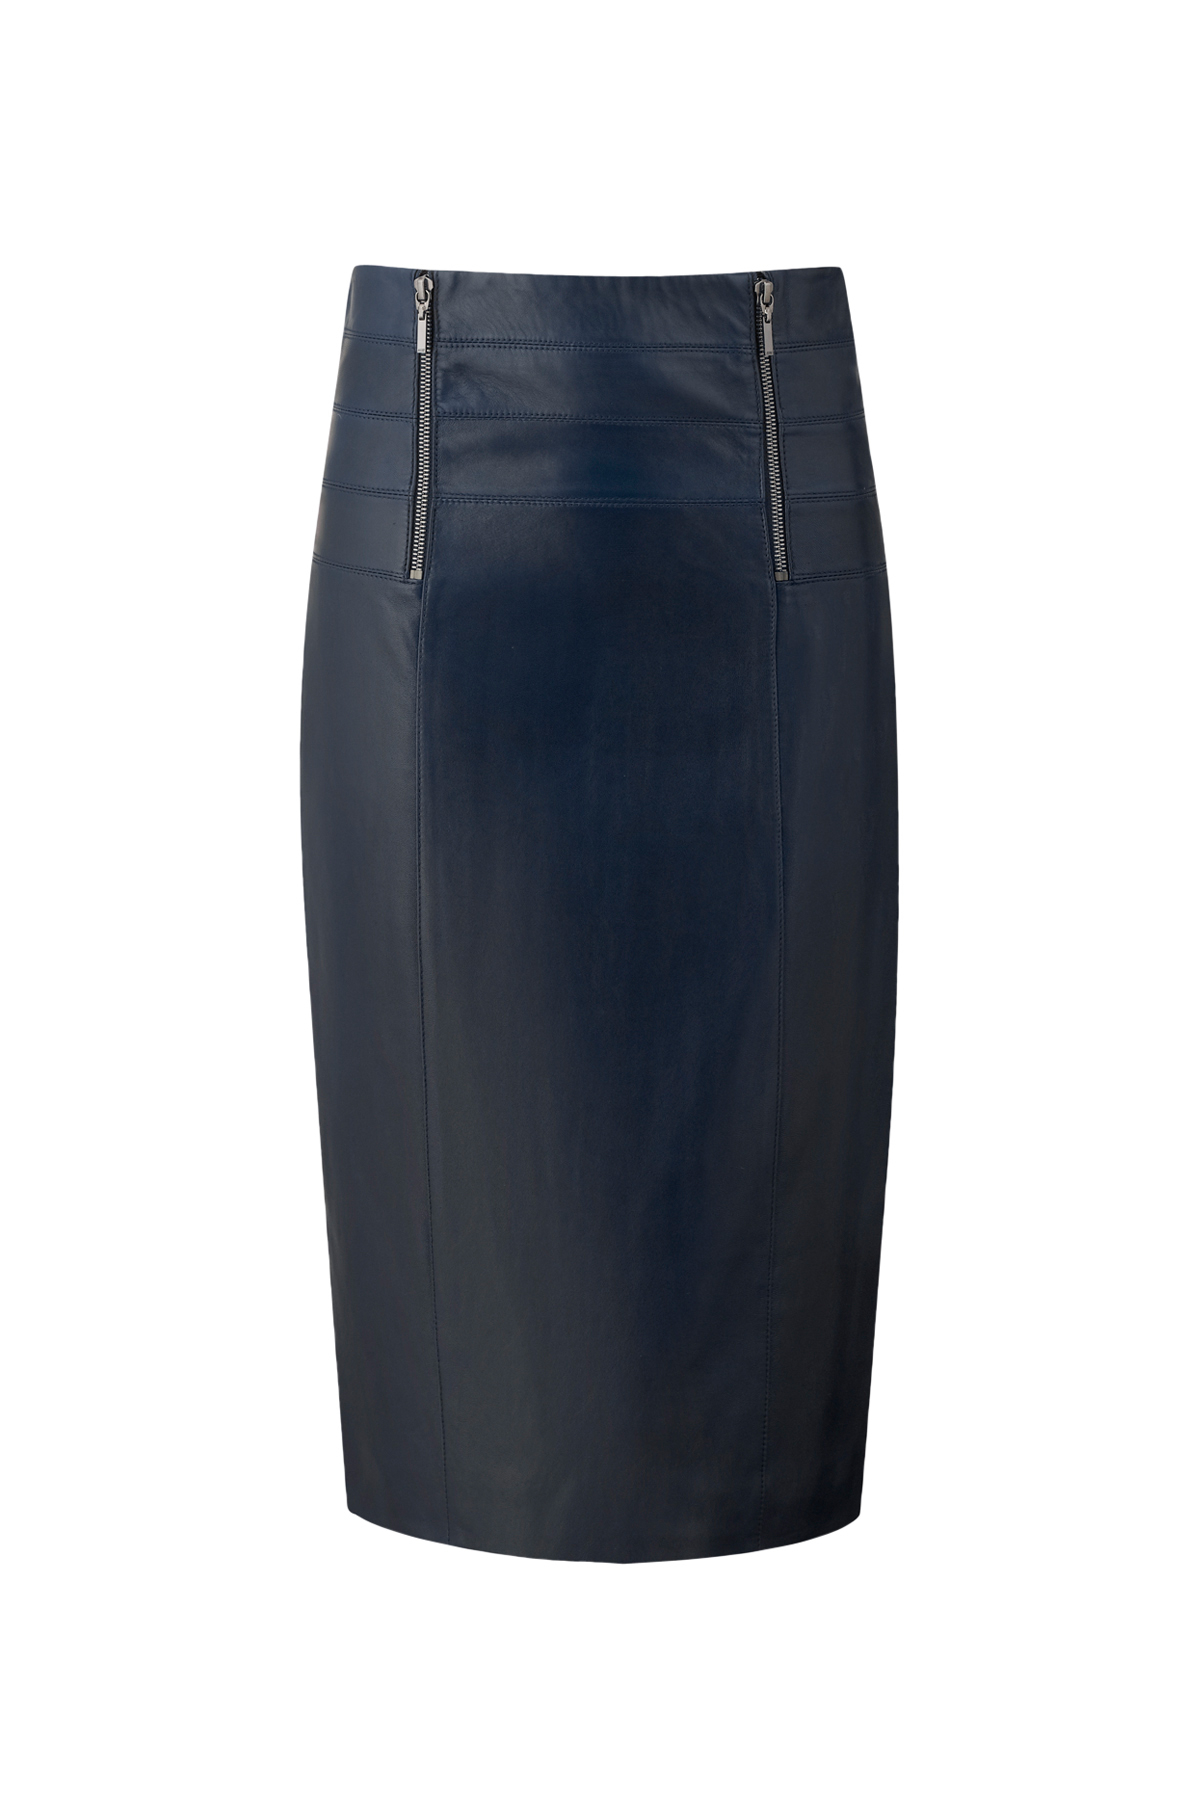 amanda wakeley pfeiffer leather pencil skirt in blue lyst